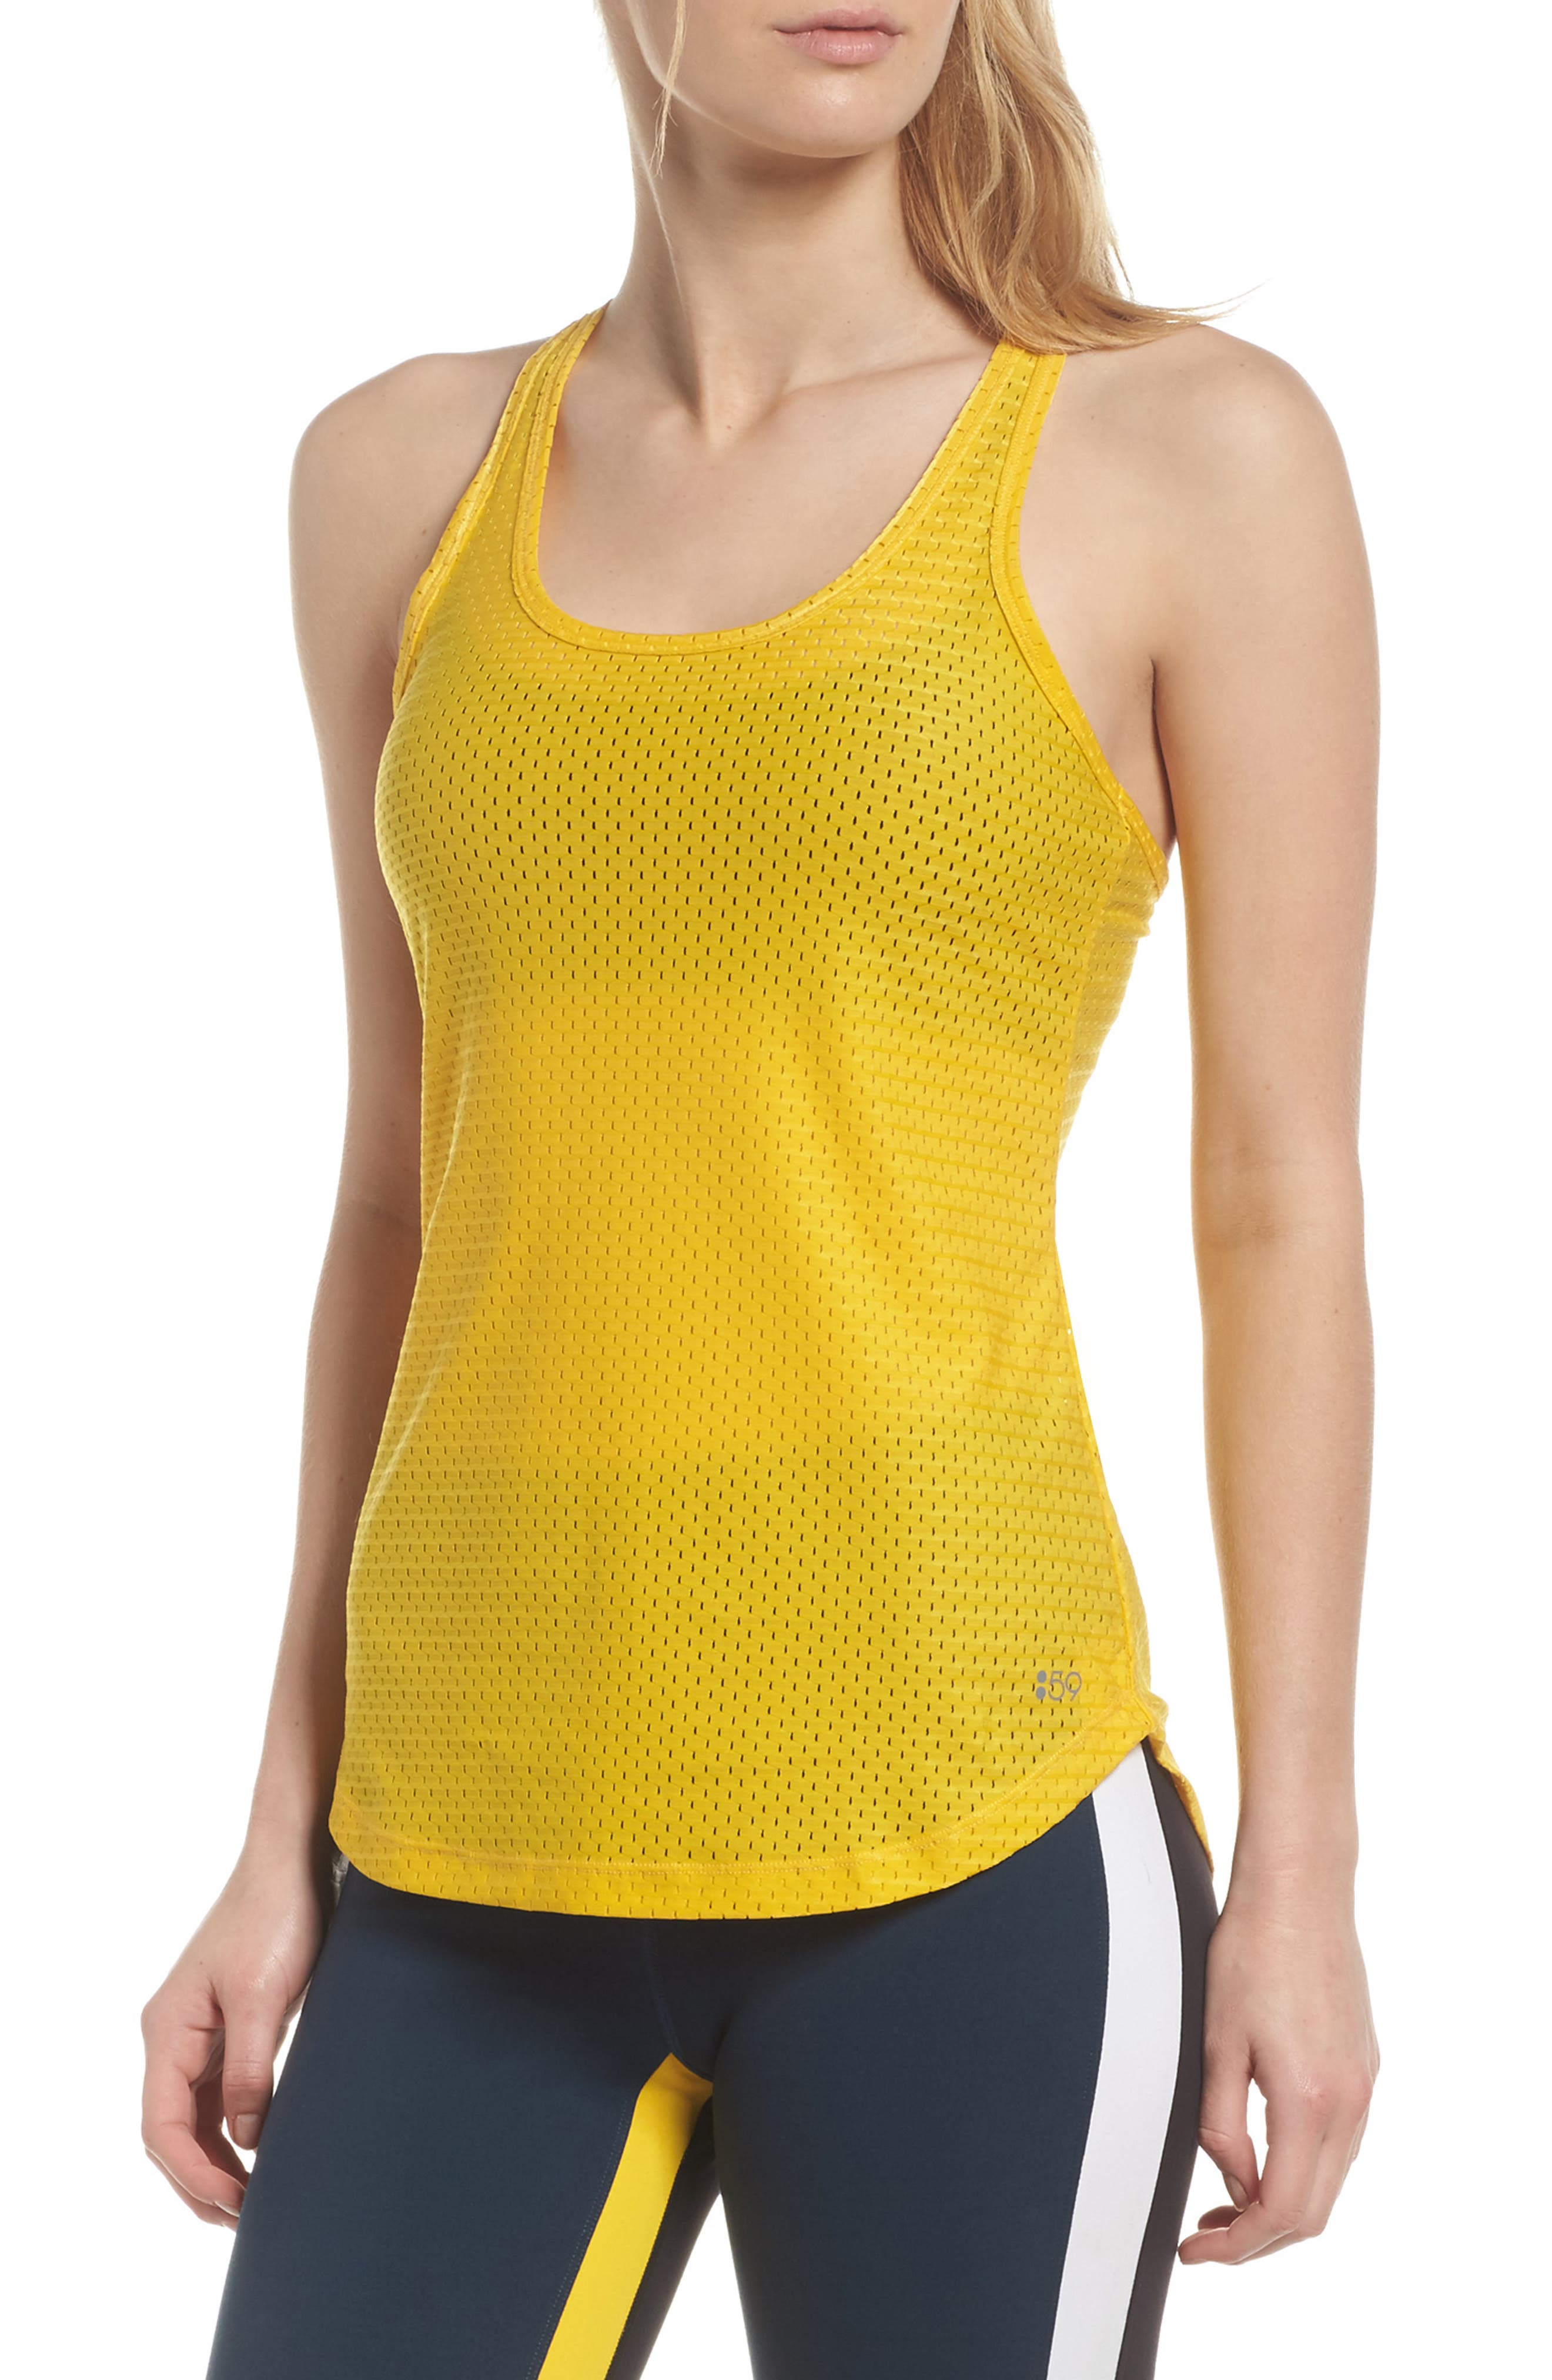 SPLITS59 Trainer Tank, Main, color, 700